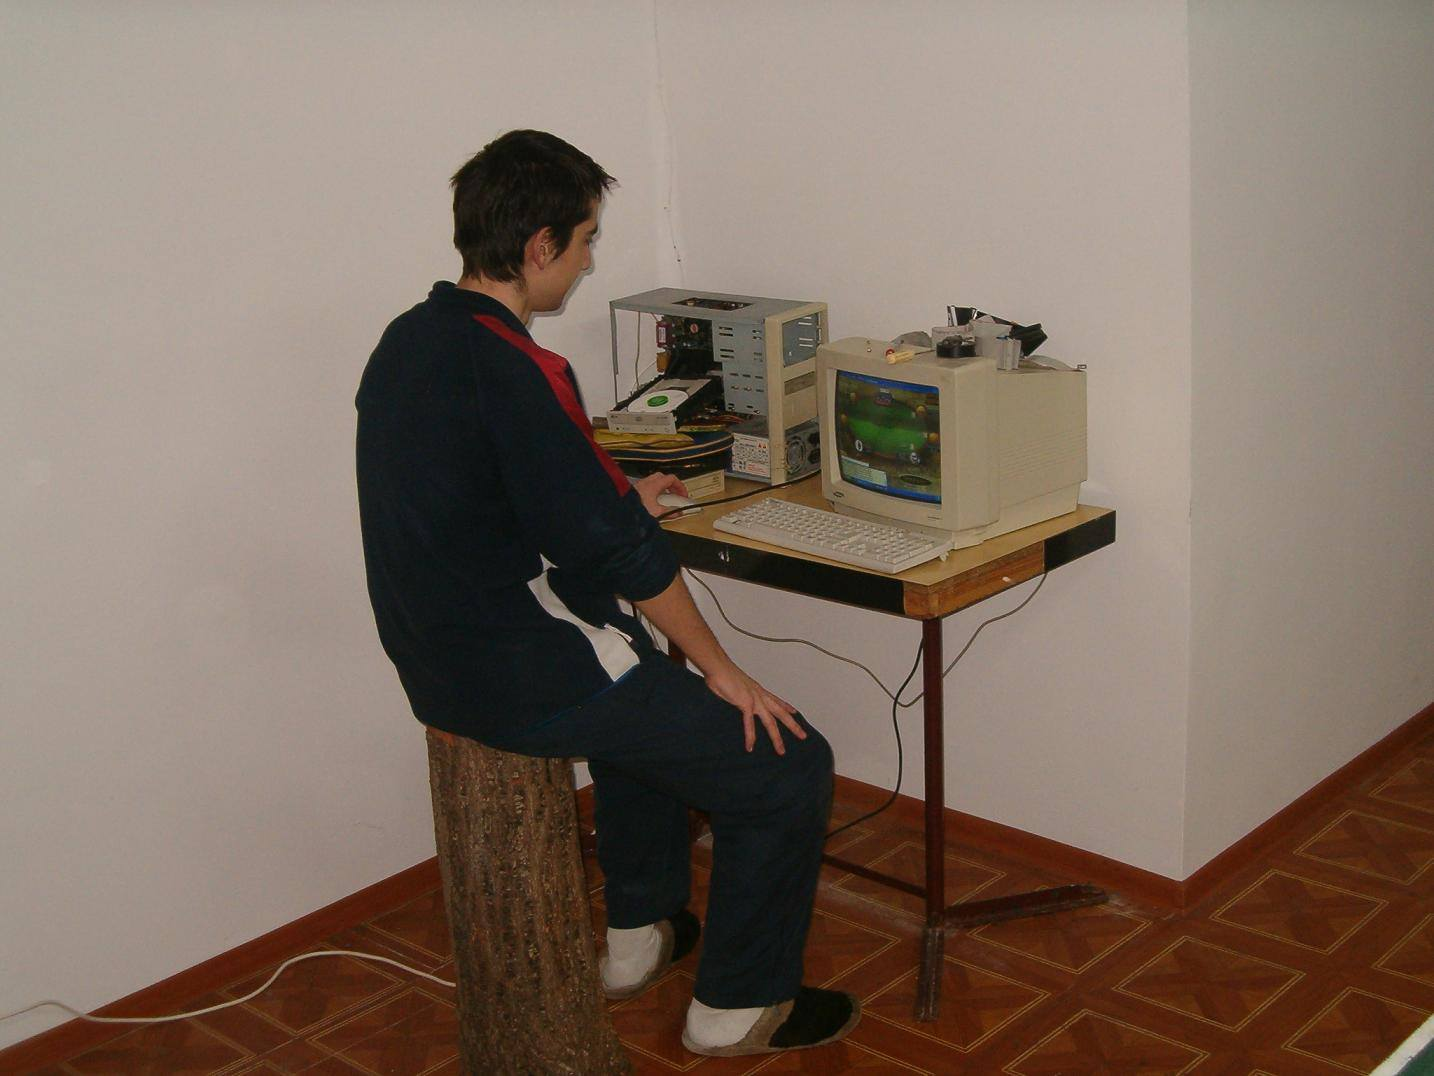 retro gaming on PC with wood